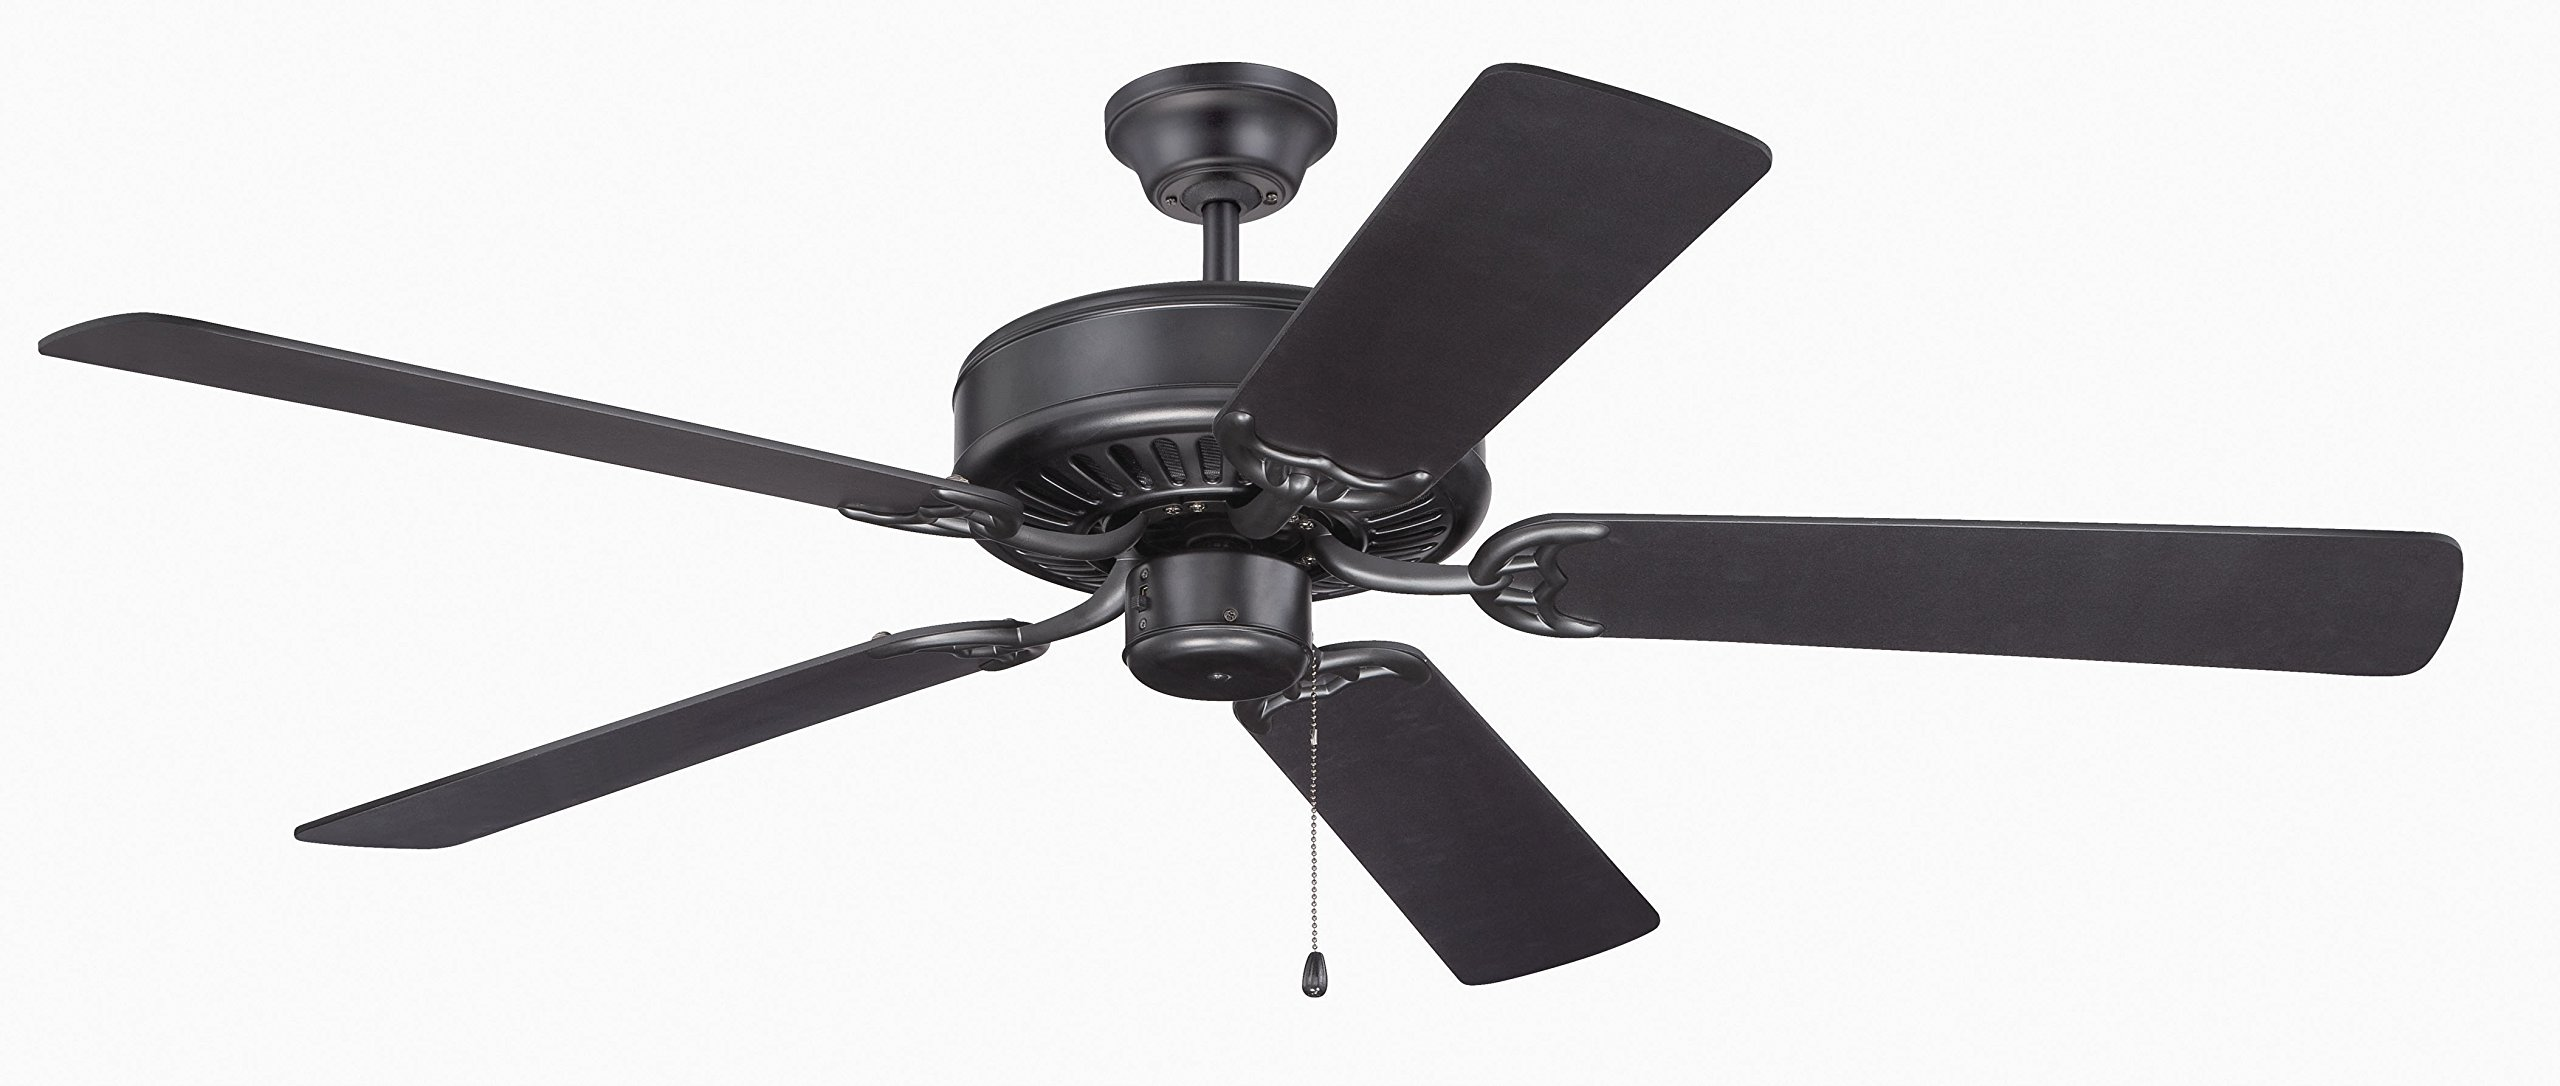 Craftmade K11136 Ceiling Fan Motor with Blades Included, 52''